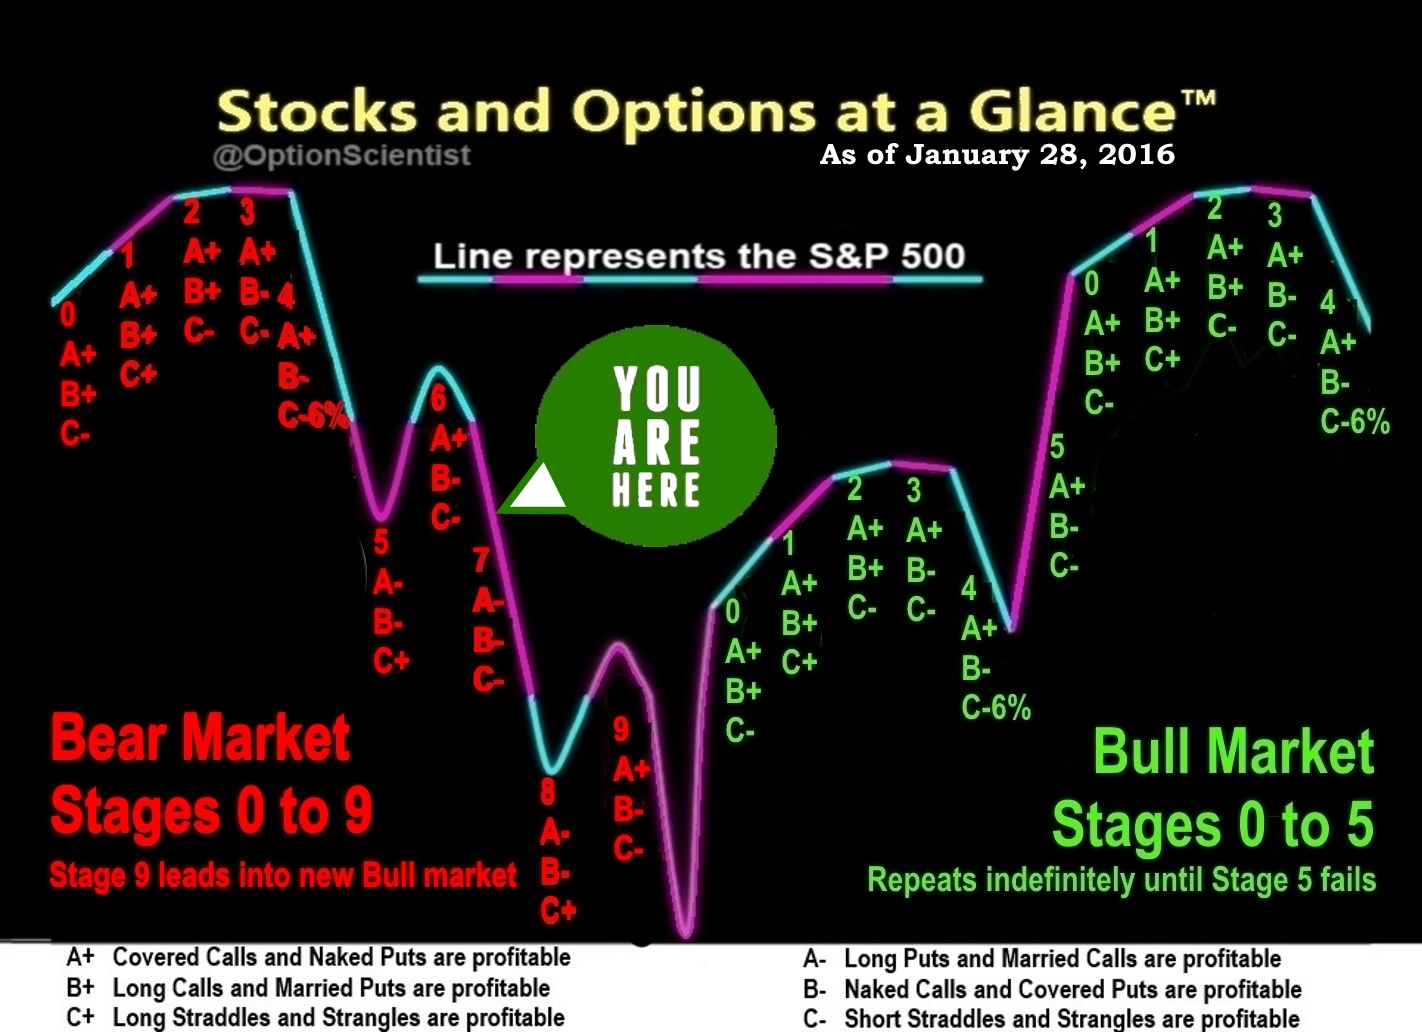 Stocks and Options at a Glance 01-28-16